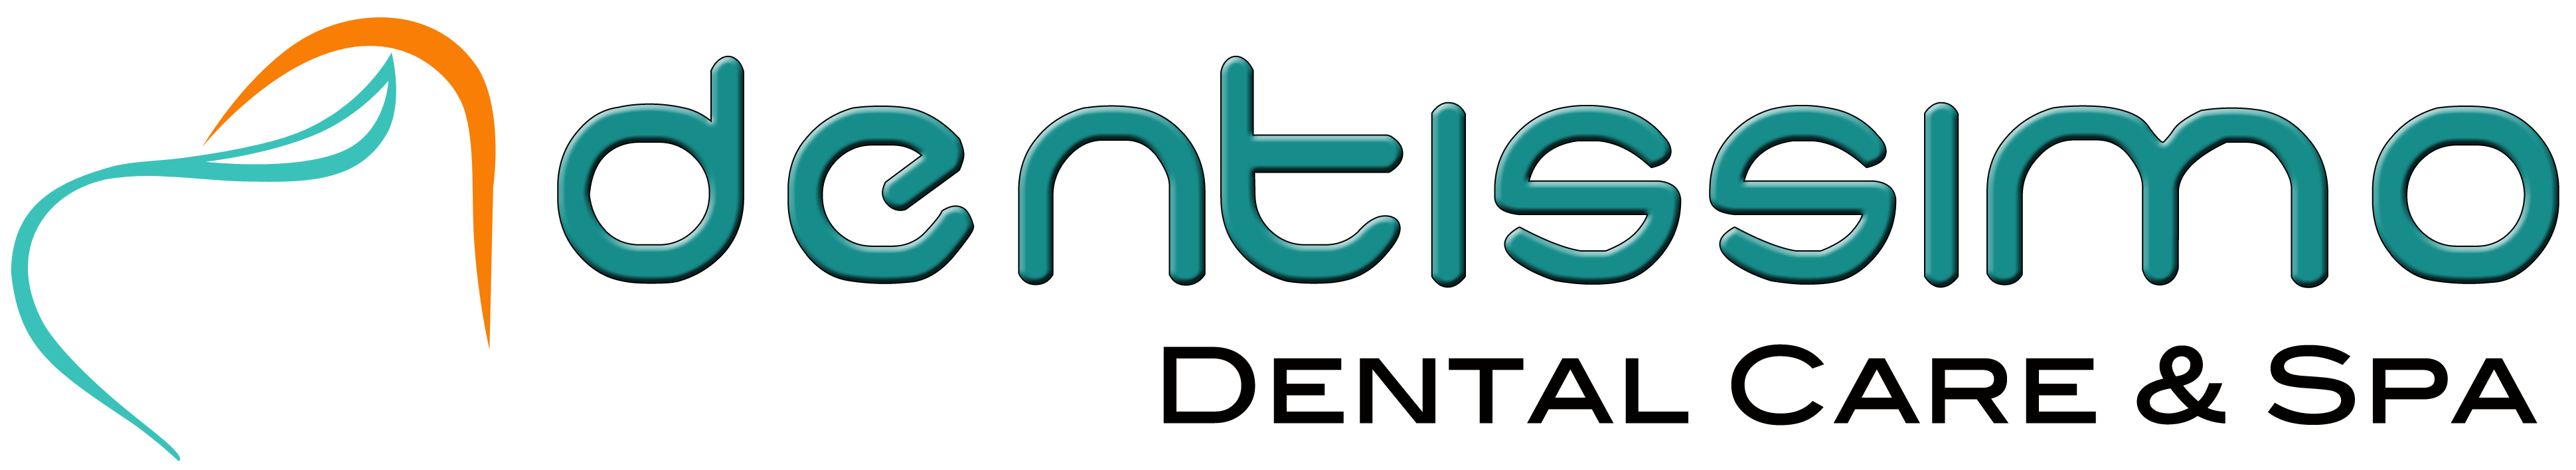 Dentissimo Dental Care & Spa | Best dentist / dental clinic in Bandra West , Mumbai | Root canal, teeth whitening, extraction, implant, crowns, filling, teeth cleaning in Mumbai